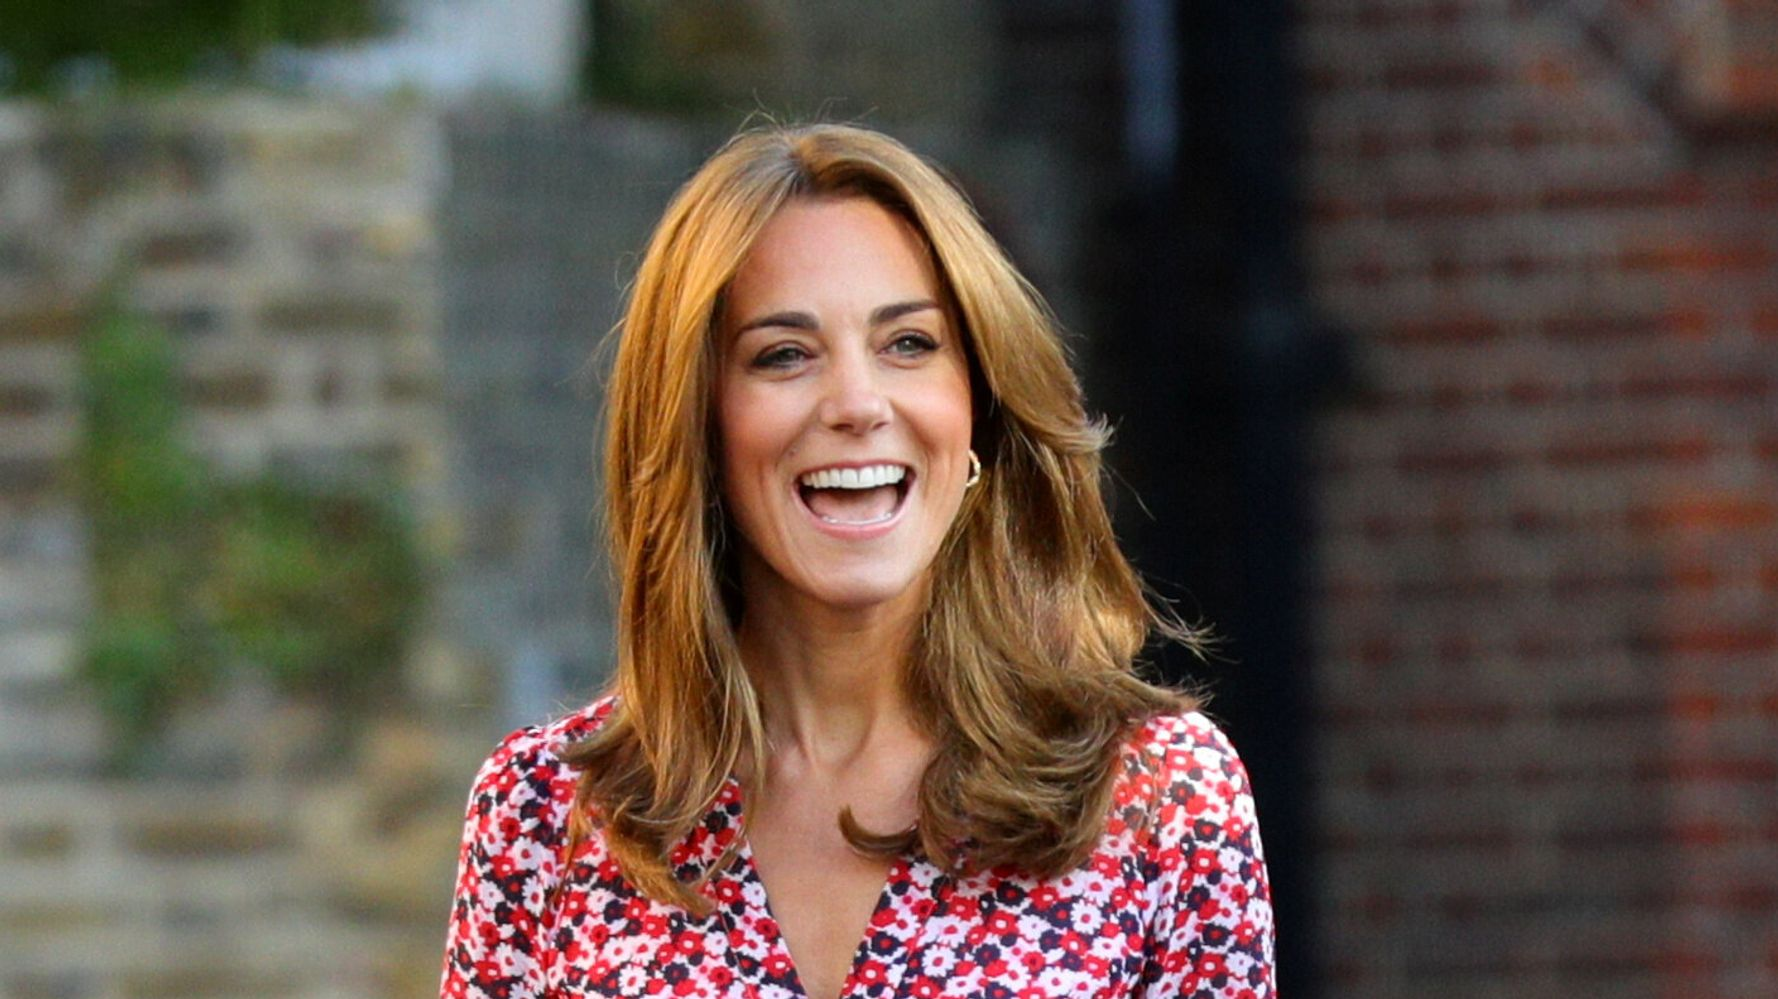 Going Blonde For Autumn? Kate Middleton Isn't The Only One